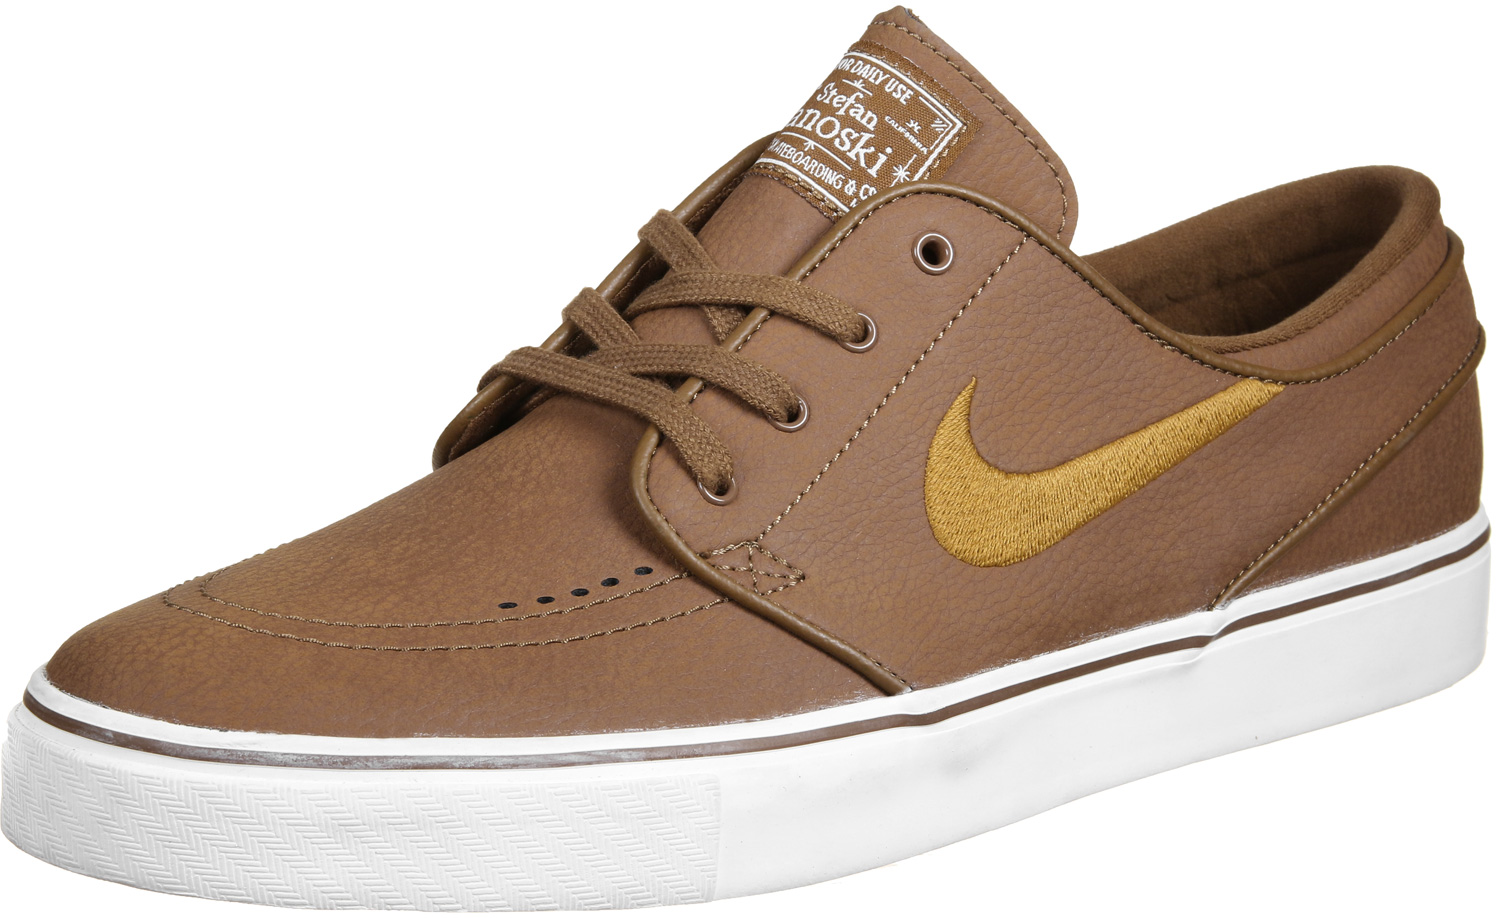 nike sb stefan janoski marron, Nike SB Stefan Janoski shoes brown